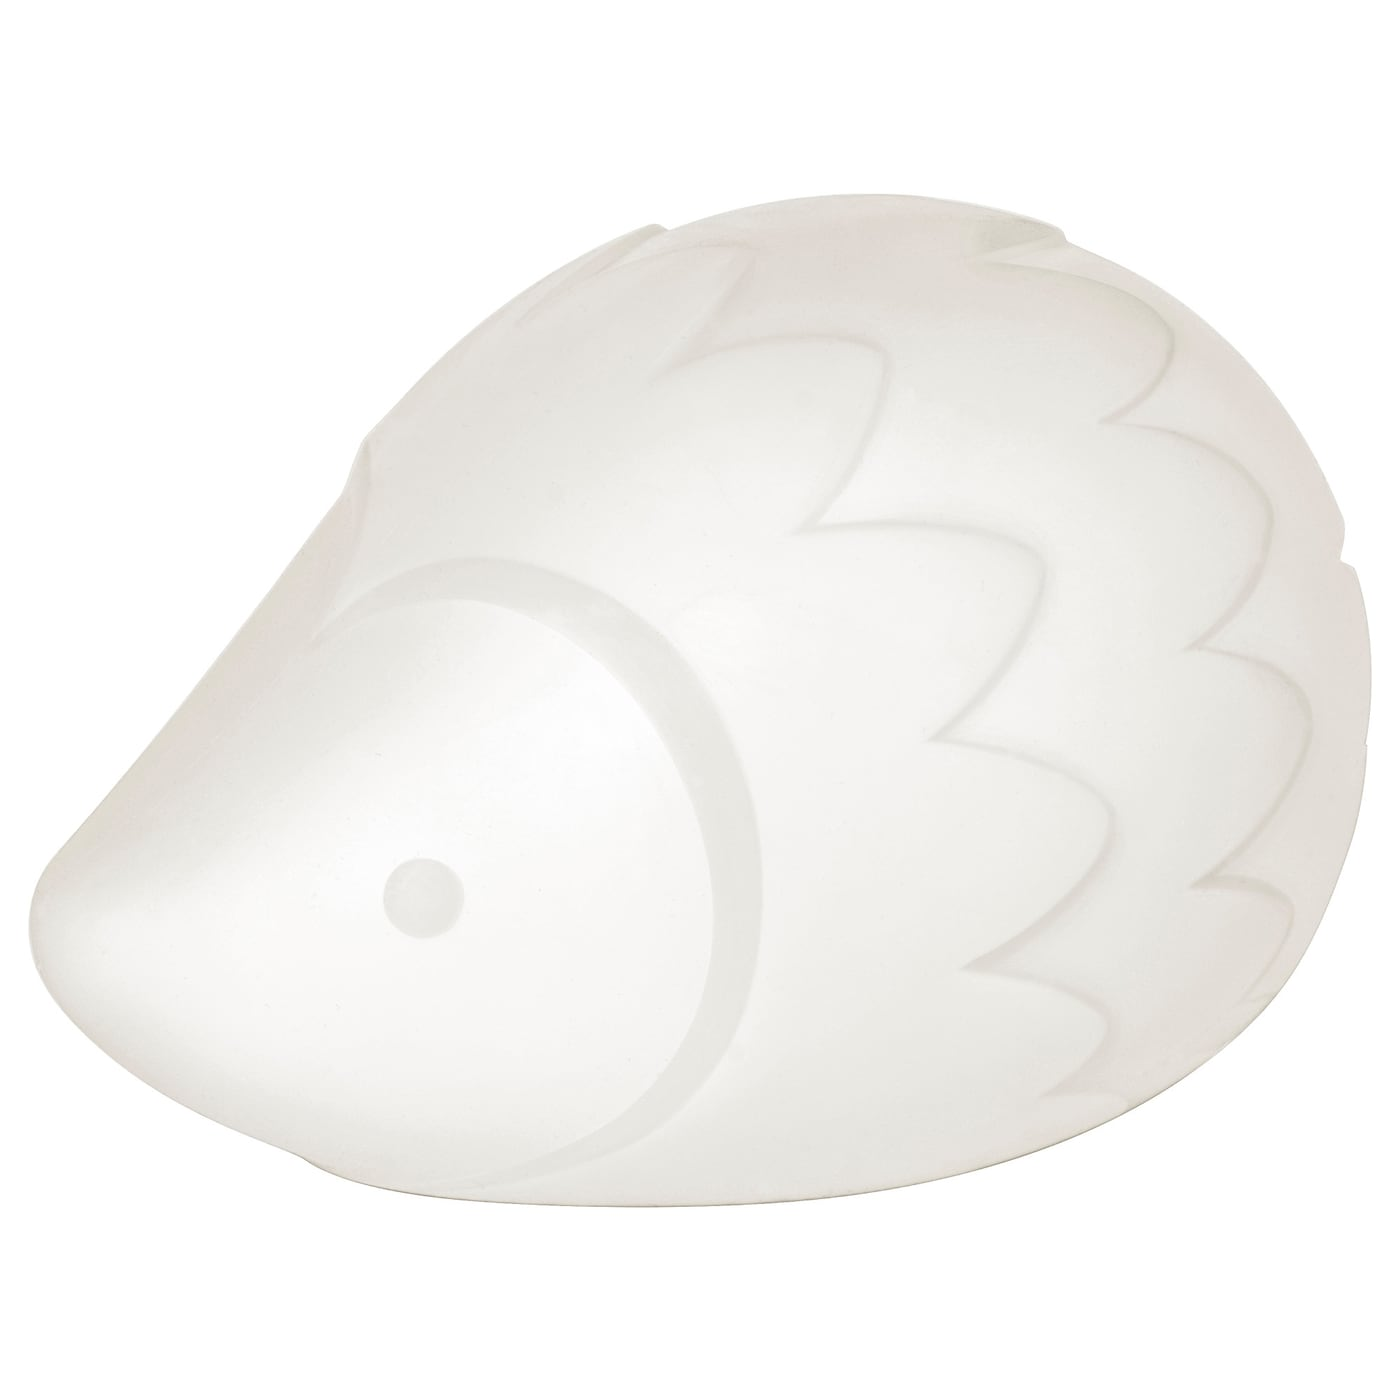 ikea childrens lighting. IKEA LURIGA LED Night Light Perfect For Scaring Little Monsters Away. Ikea Childrens Lighting S